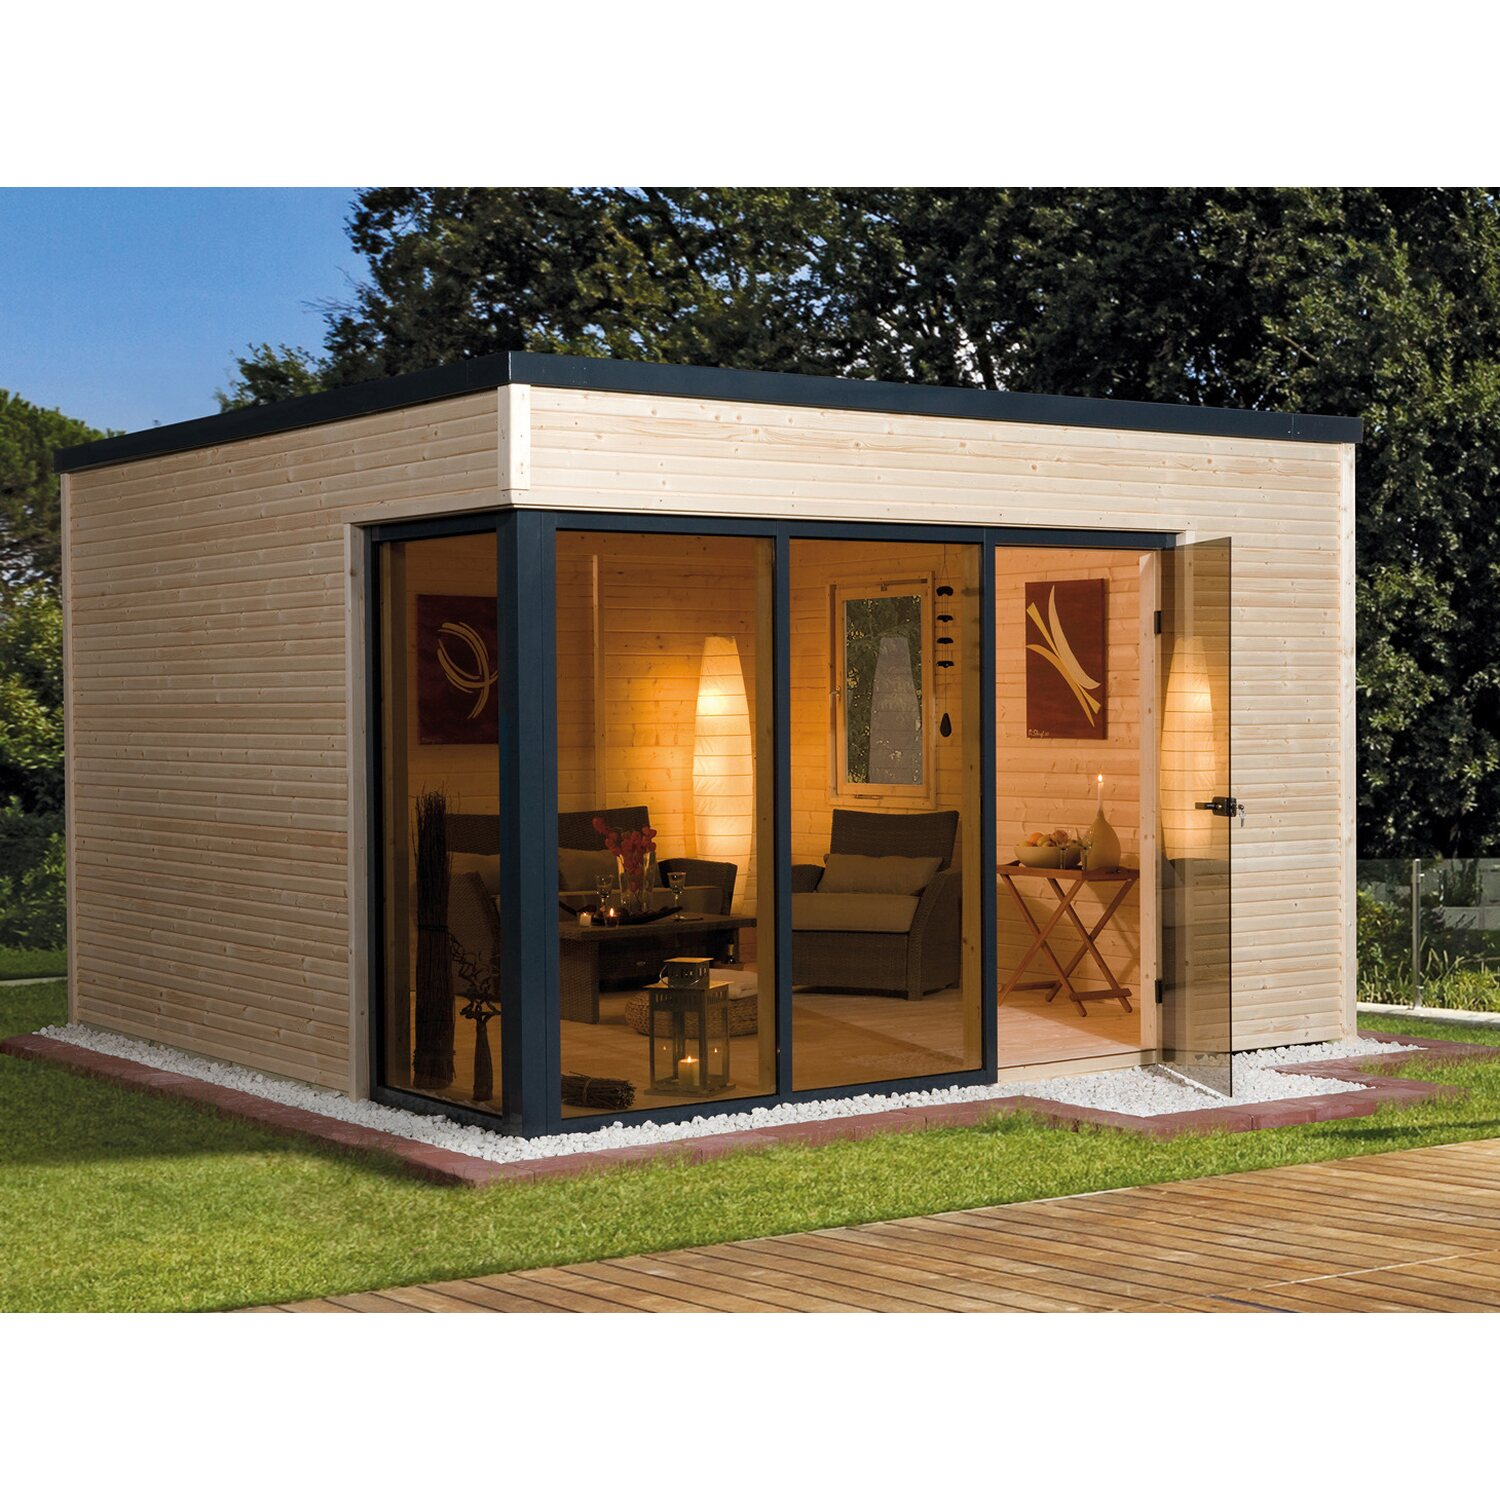 weka design holz gartenhaus cubilis a naturbxt 380 cm x 300 cm kaufen bei obi. Black Bedroom Furniture Sets. Home Design Ideas